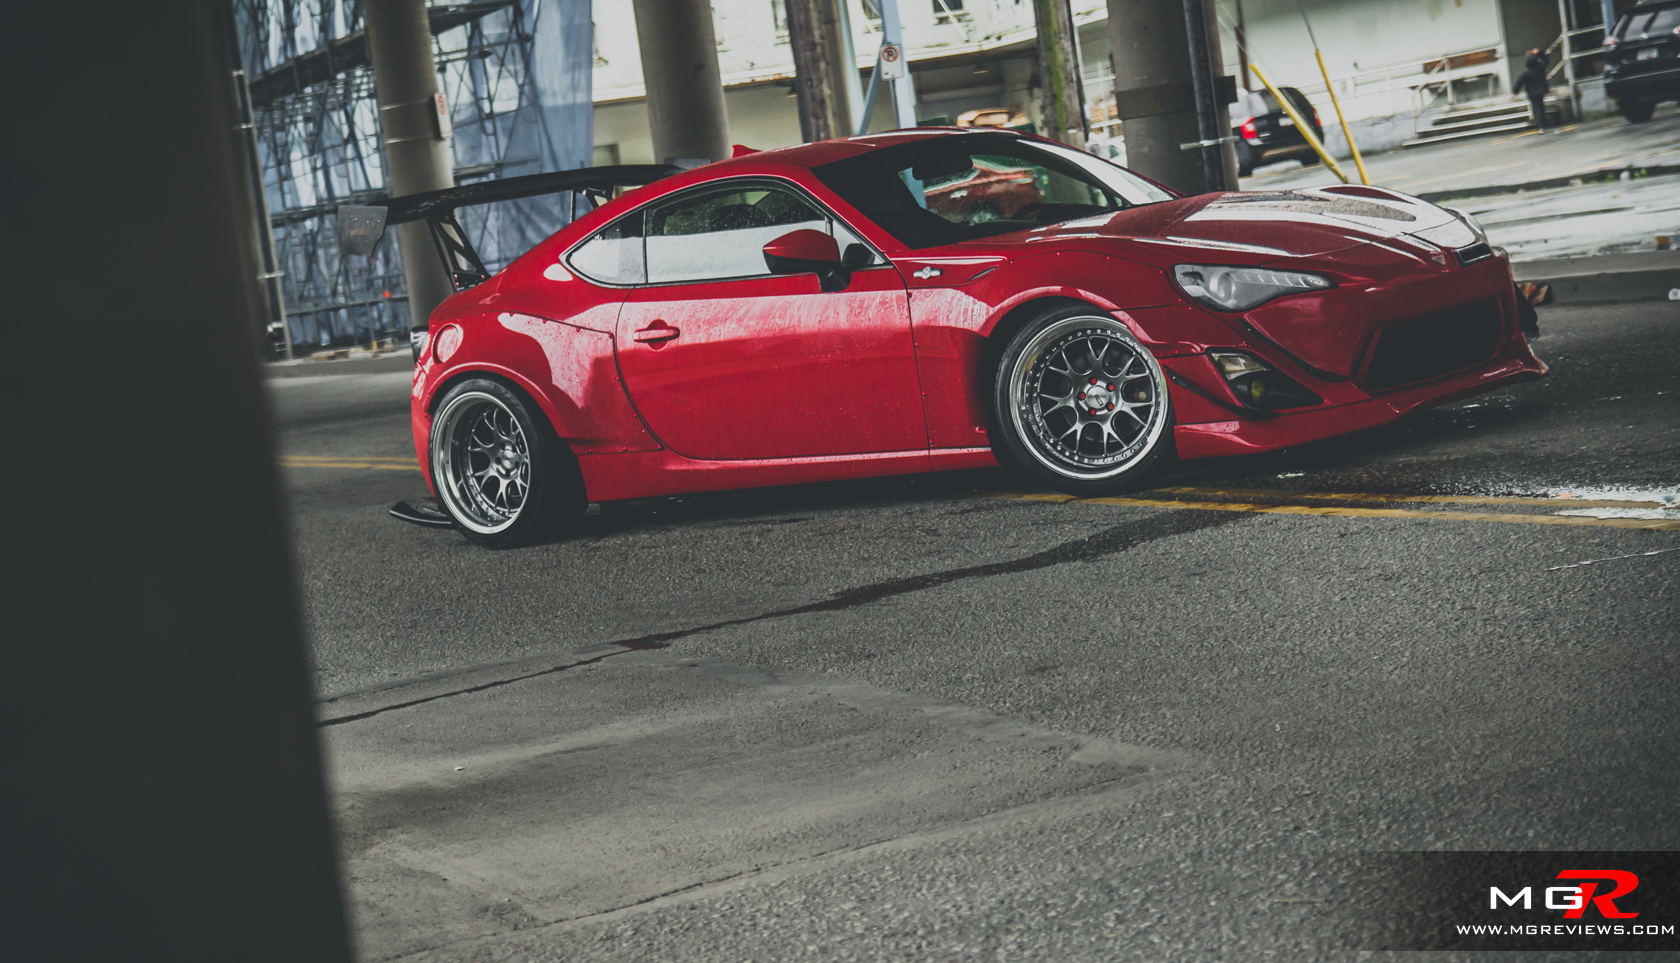 Aftermarket Performance Parts For Scion Frs Idee Auto Images